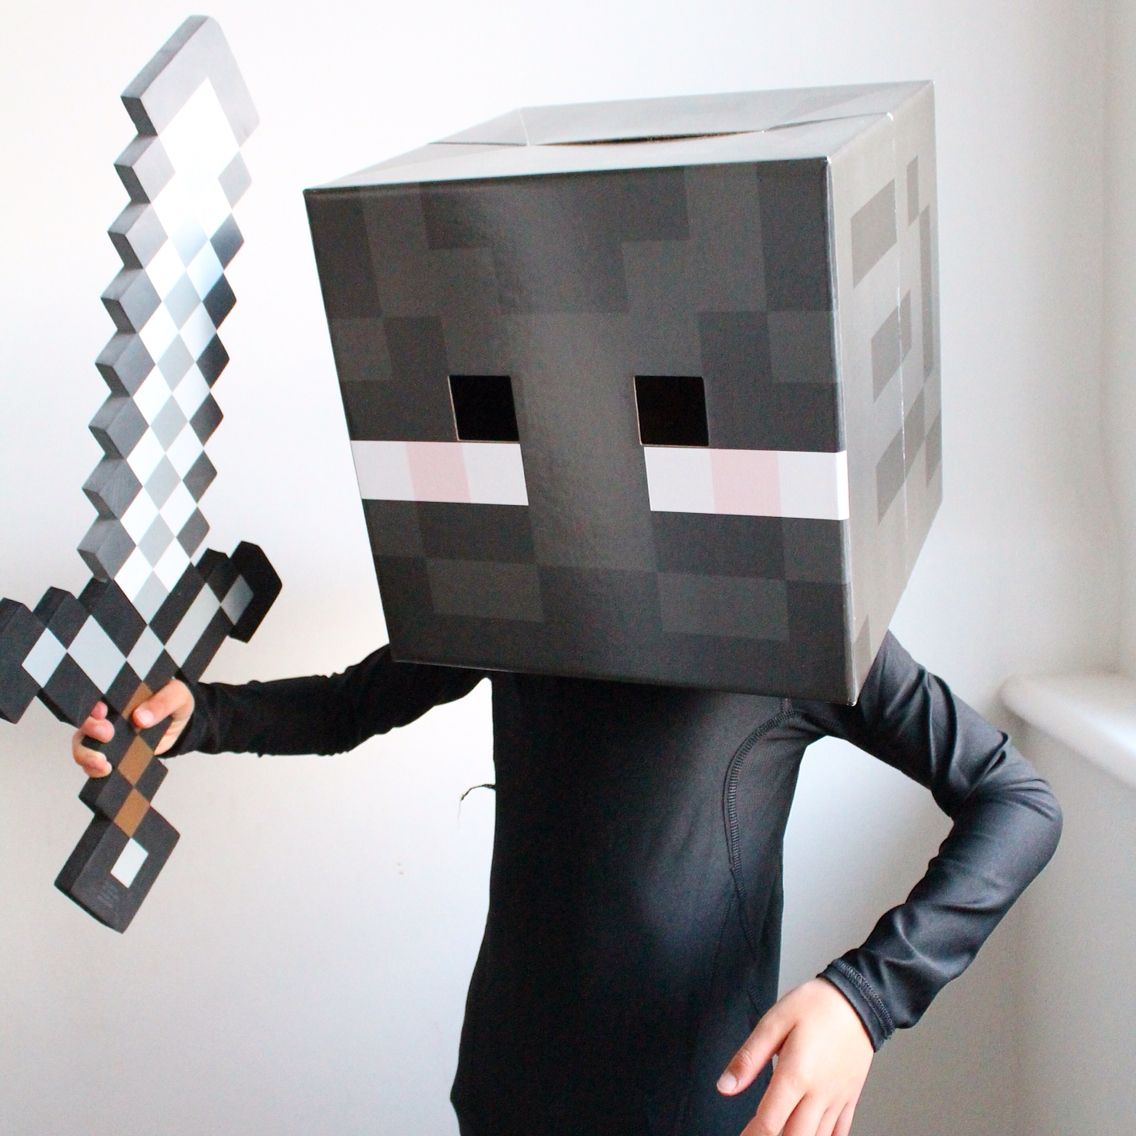 My son's Halloween costume. He is Enderman, a scary creature from the world of Minecraft.